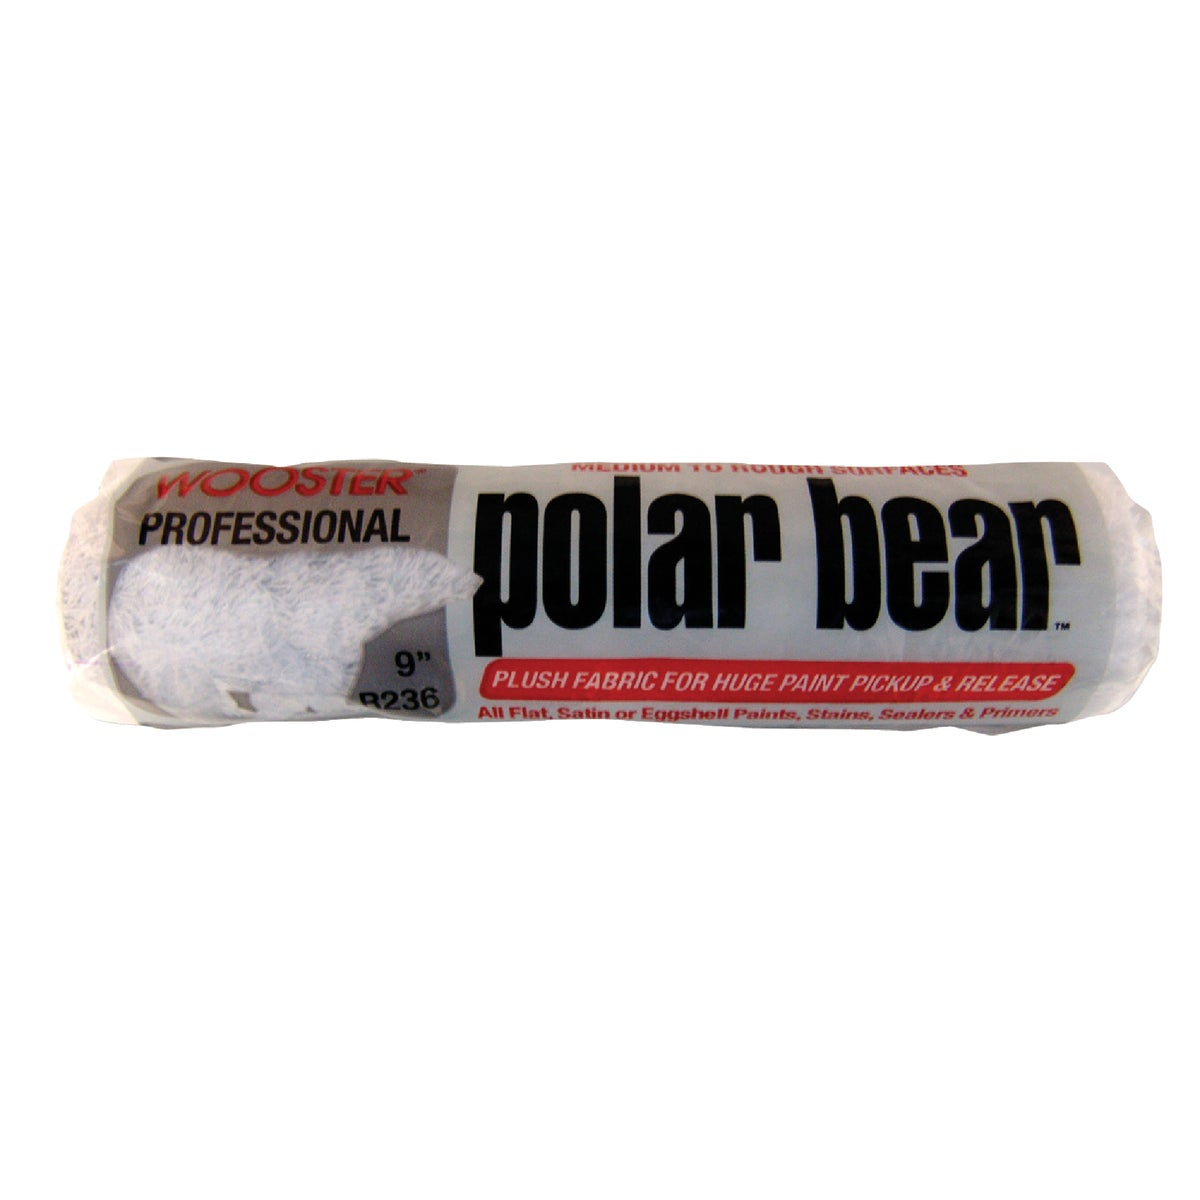 "9"" POLAR BEAR COVER"